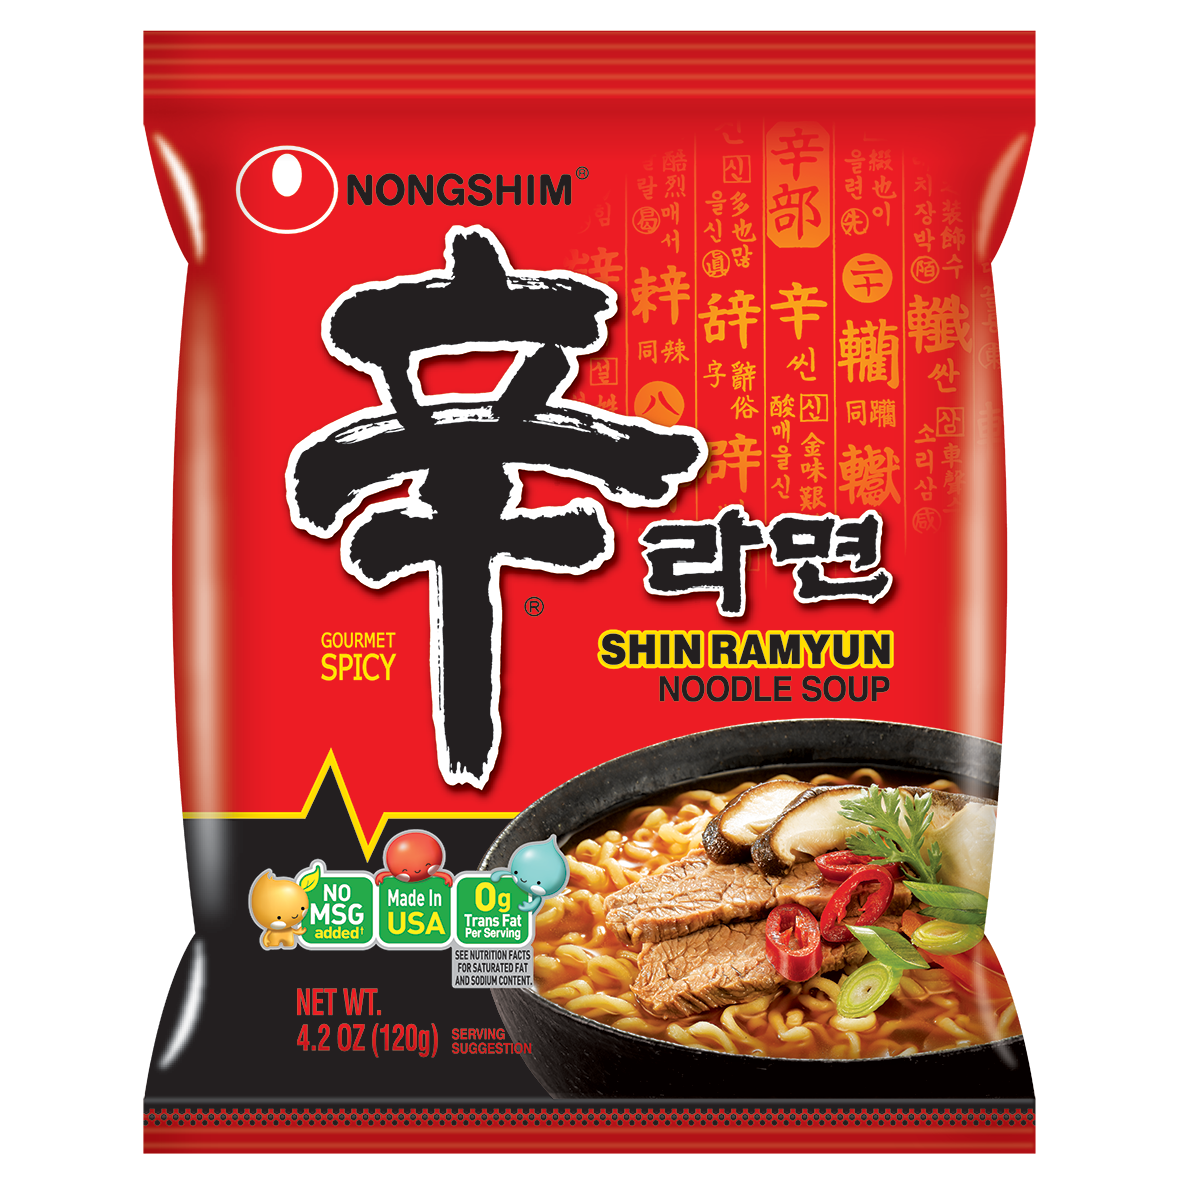 6x Nongshim, Shin Ramyun, 4.2 oz. (Pack of 10) for $35.16 ($5.86/10 pack) After Coupon at Jet.com